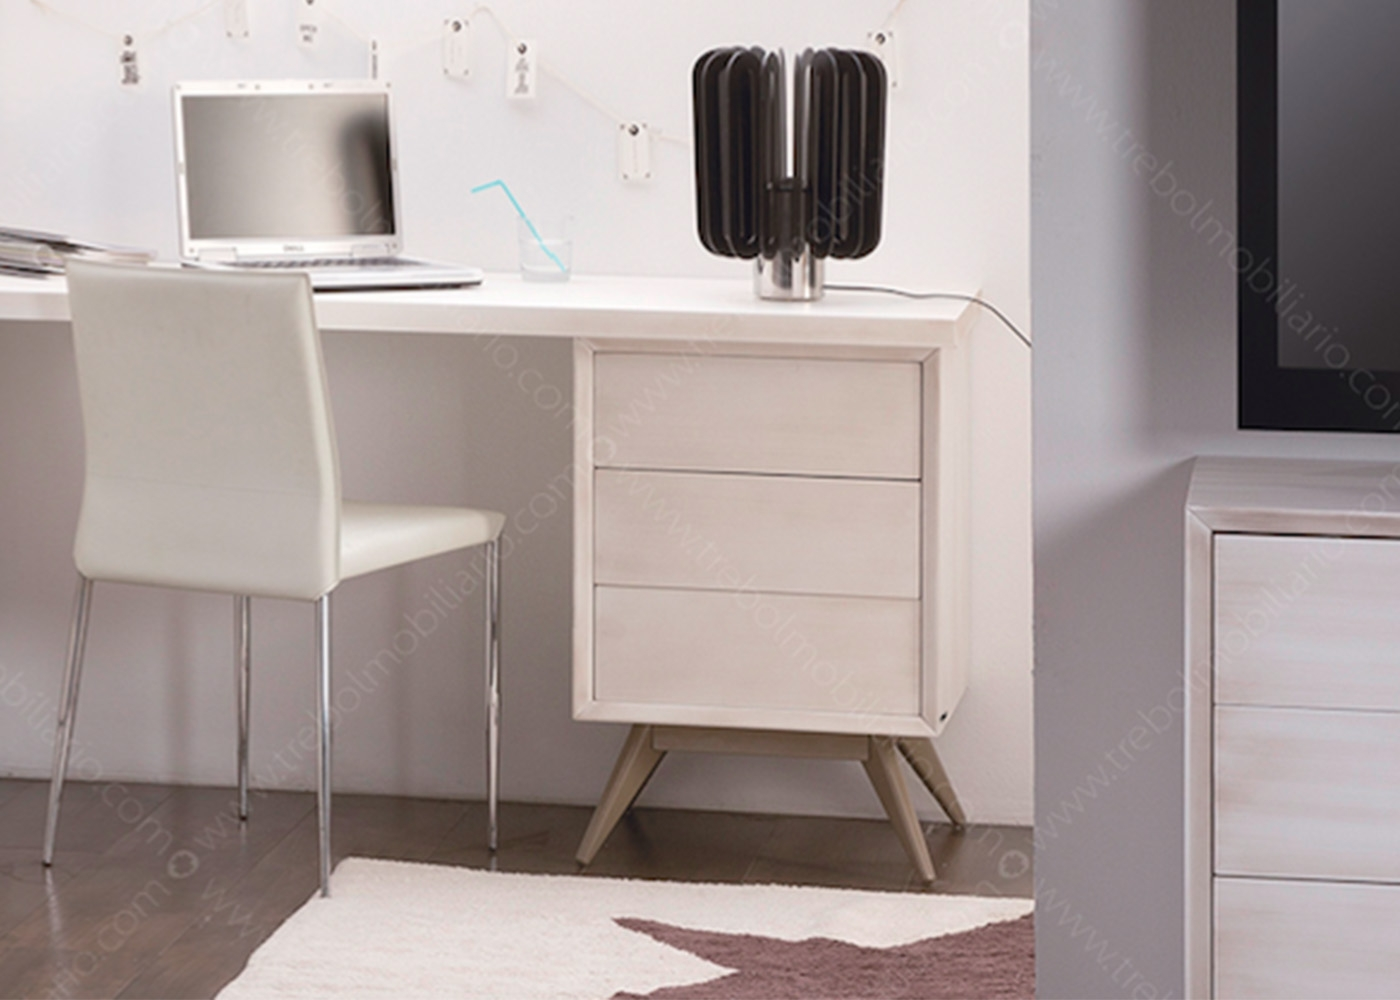 chambre jeune adulte au design scandinave haute qualit chez ksl living. Black Bedroom Furniture Sets. Home Design Ideas